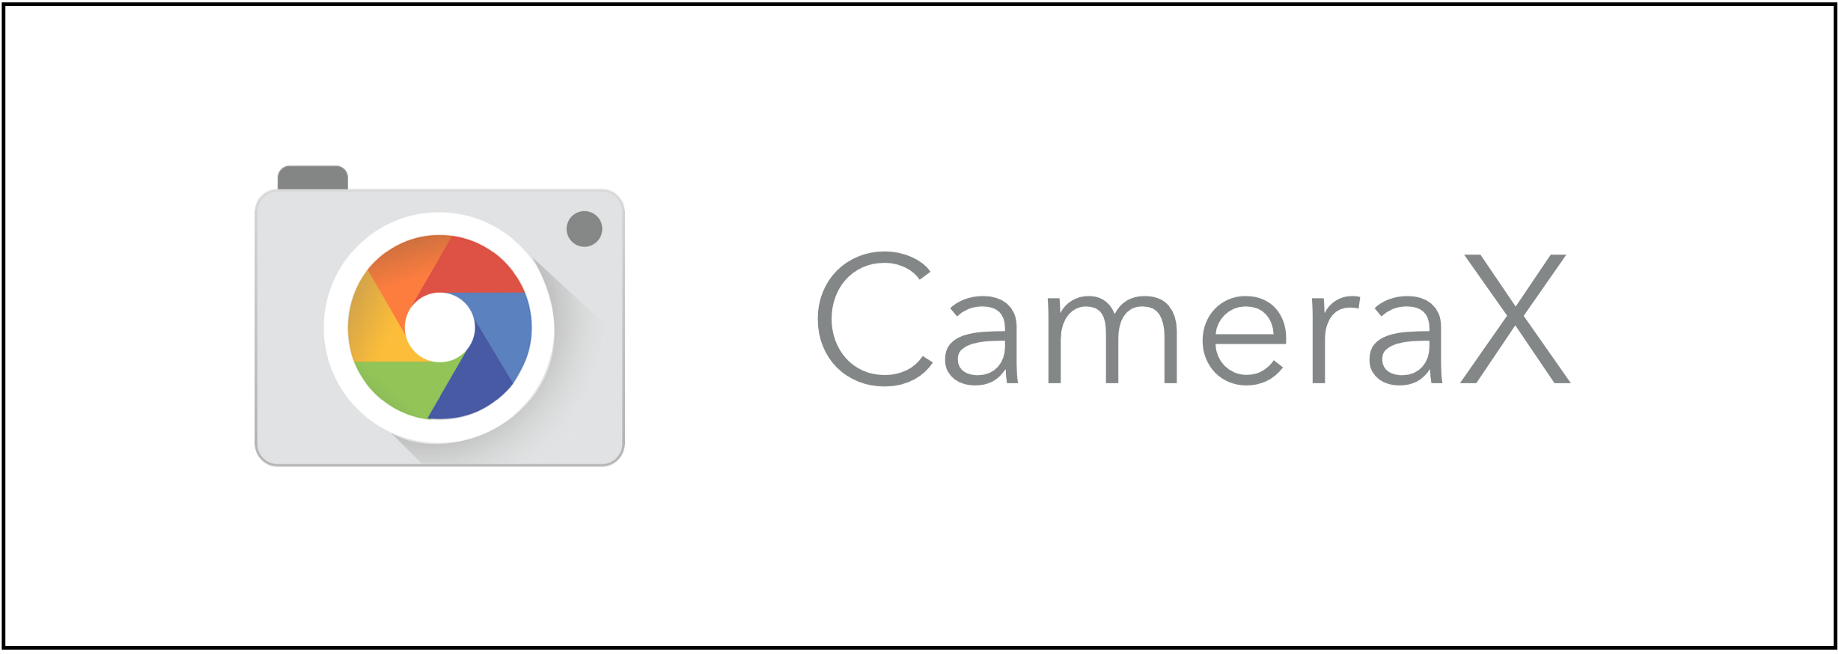 Android CameraX: Preview, Analyze, Capture  - ProAndroidDev